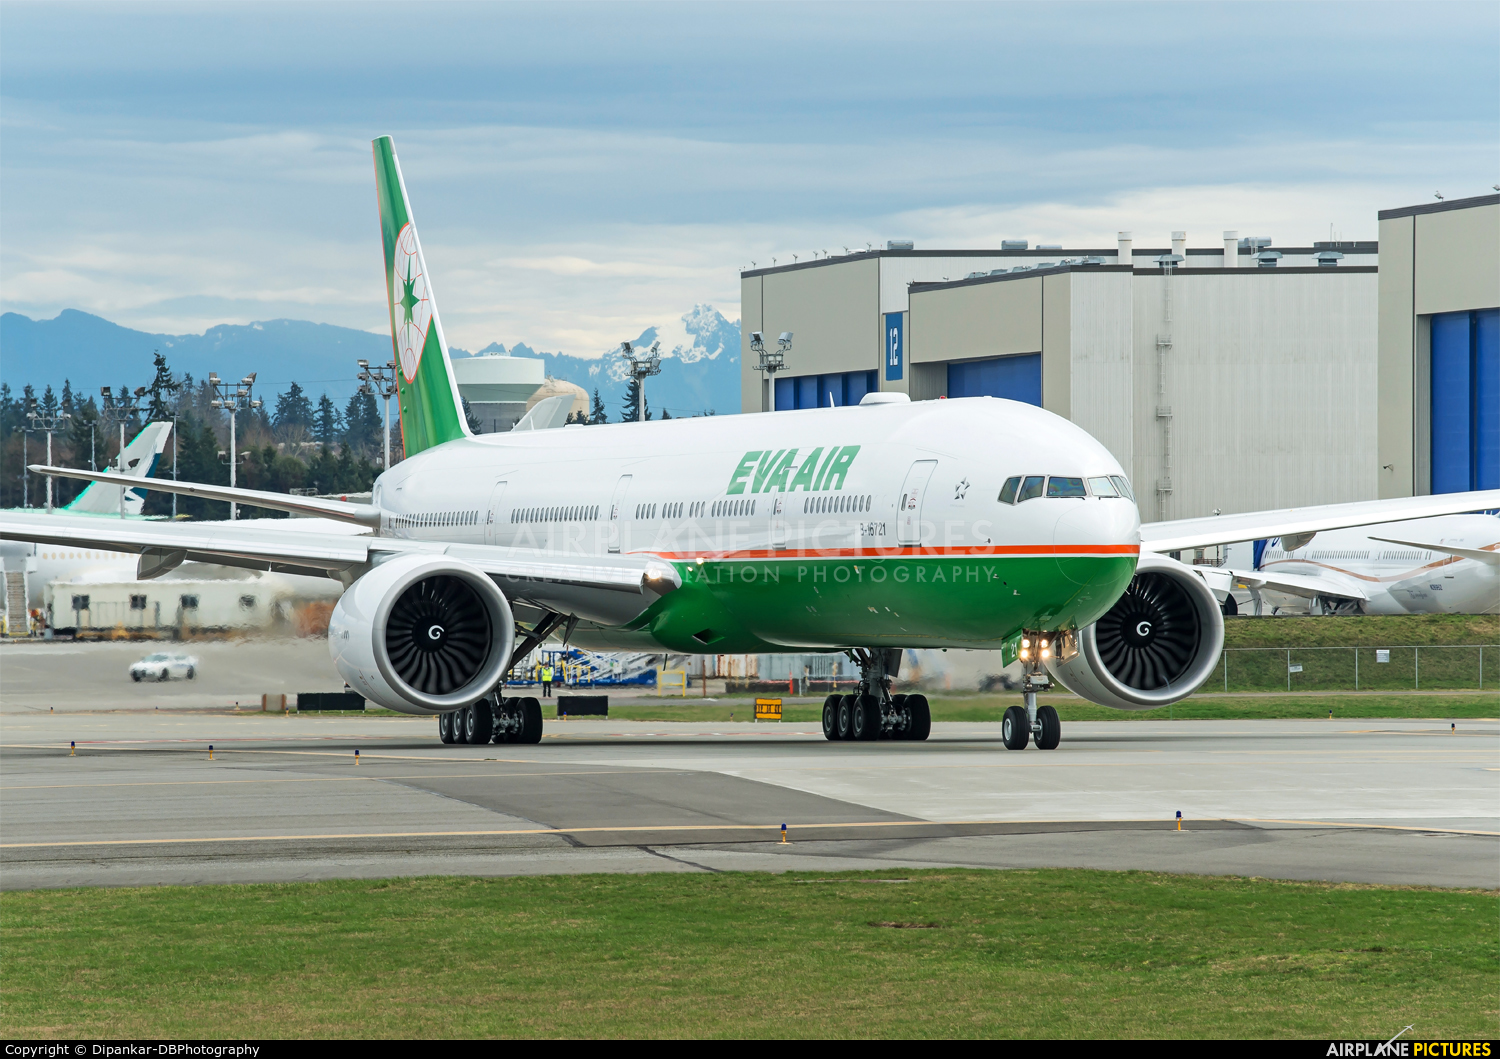 Eva Air B-16721 aircraft at Everett - Snohomish County / Paine Field